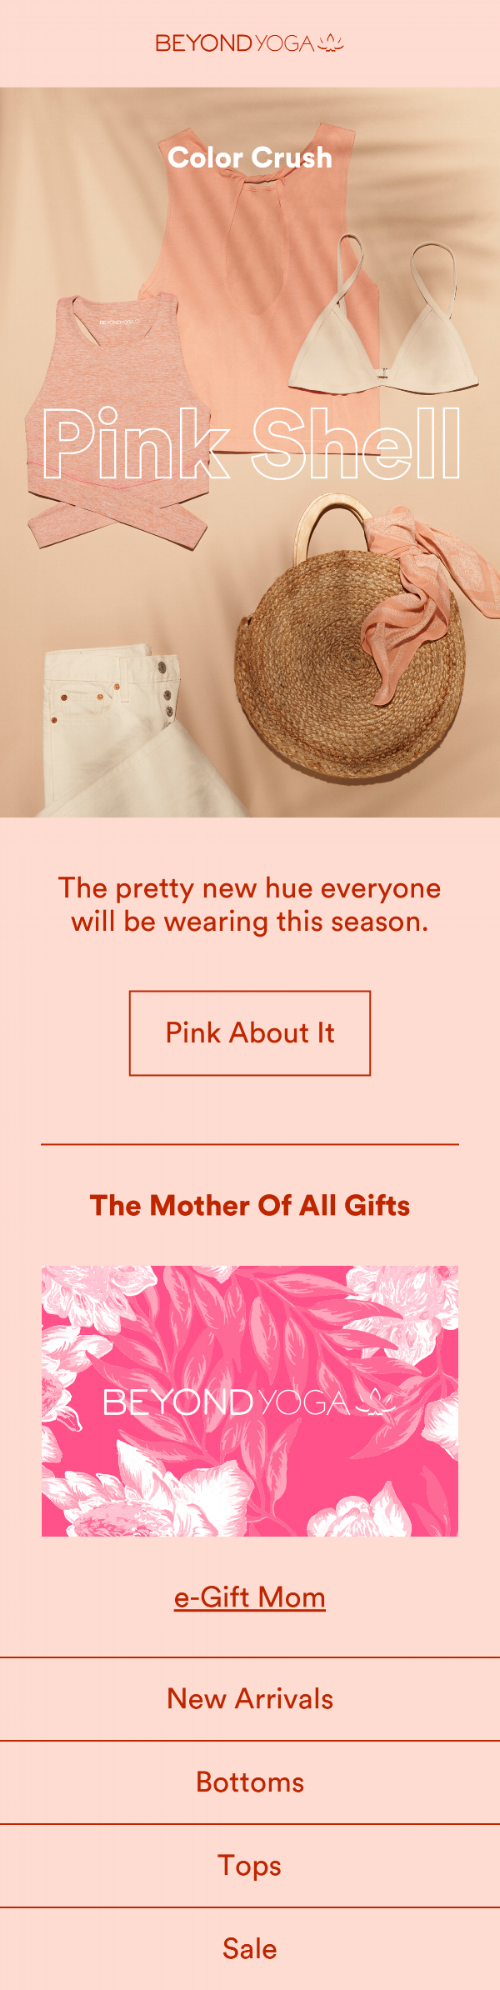 051218_CC_PINK_SHELL_EMAIL.png